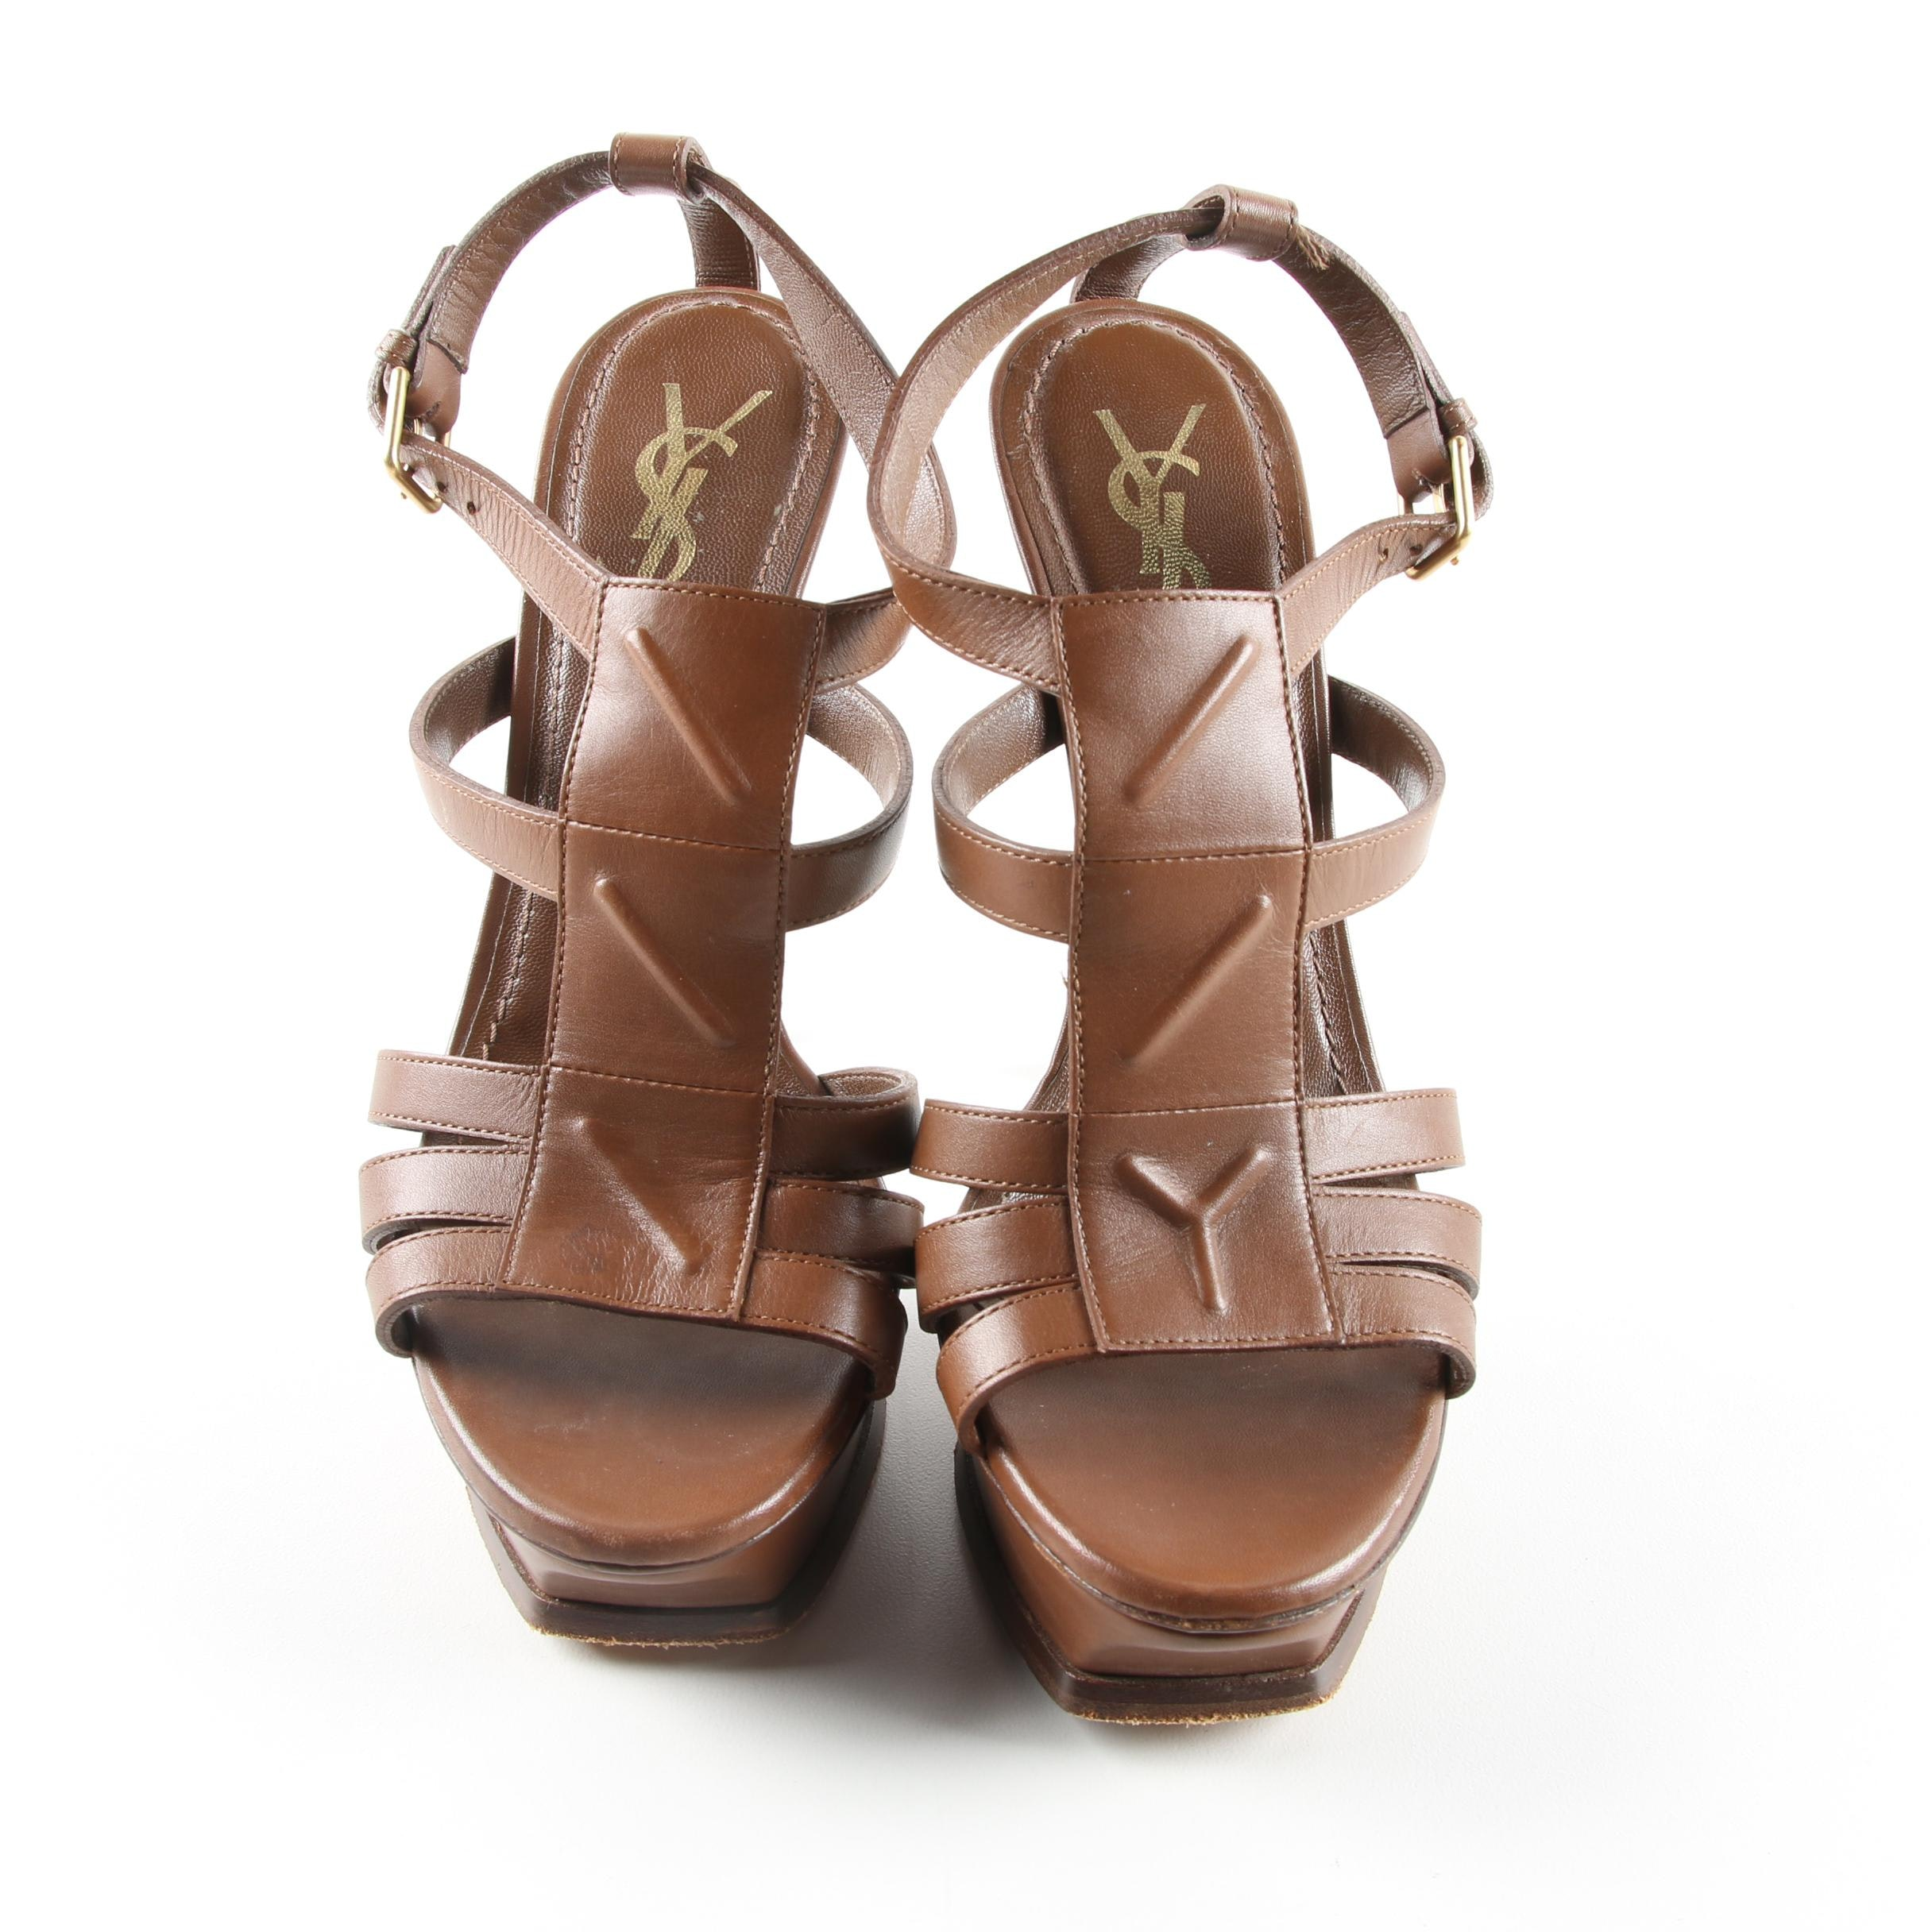 Yves Saint Laurent Brown Leather Platform Sandals